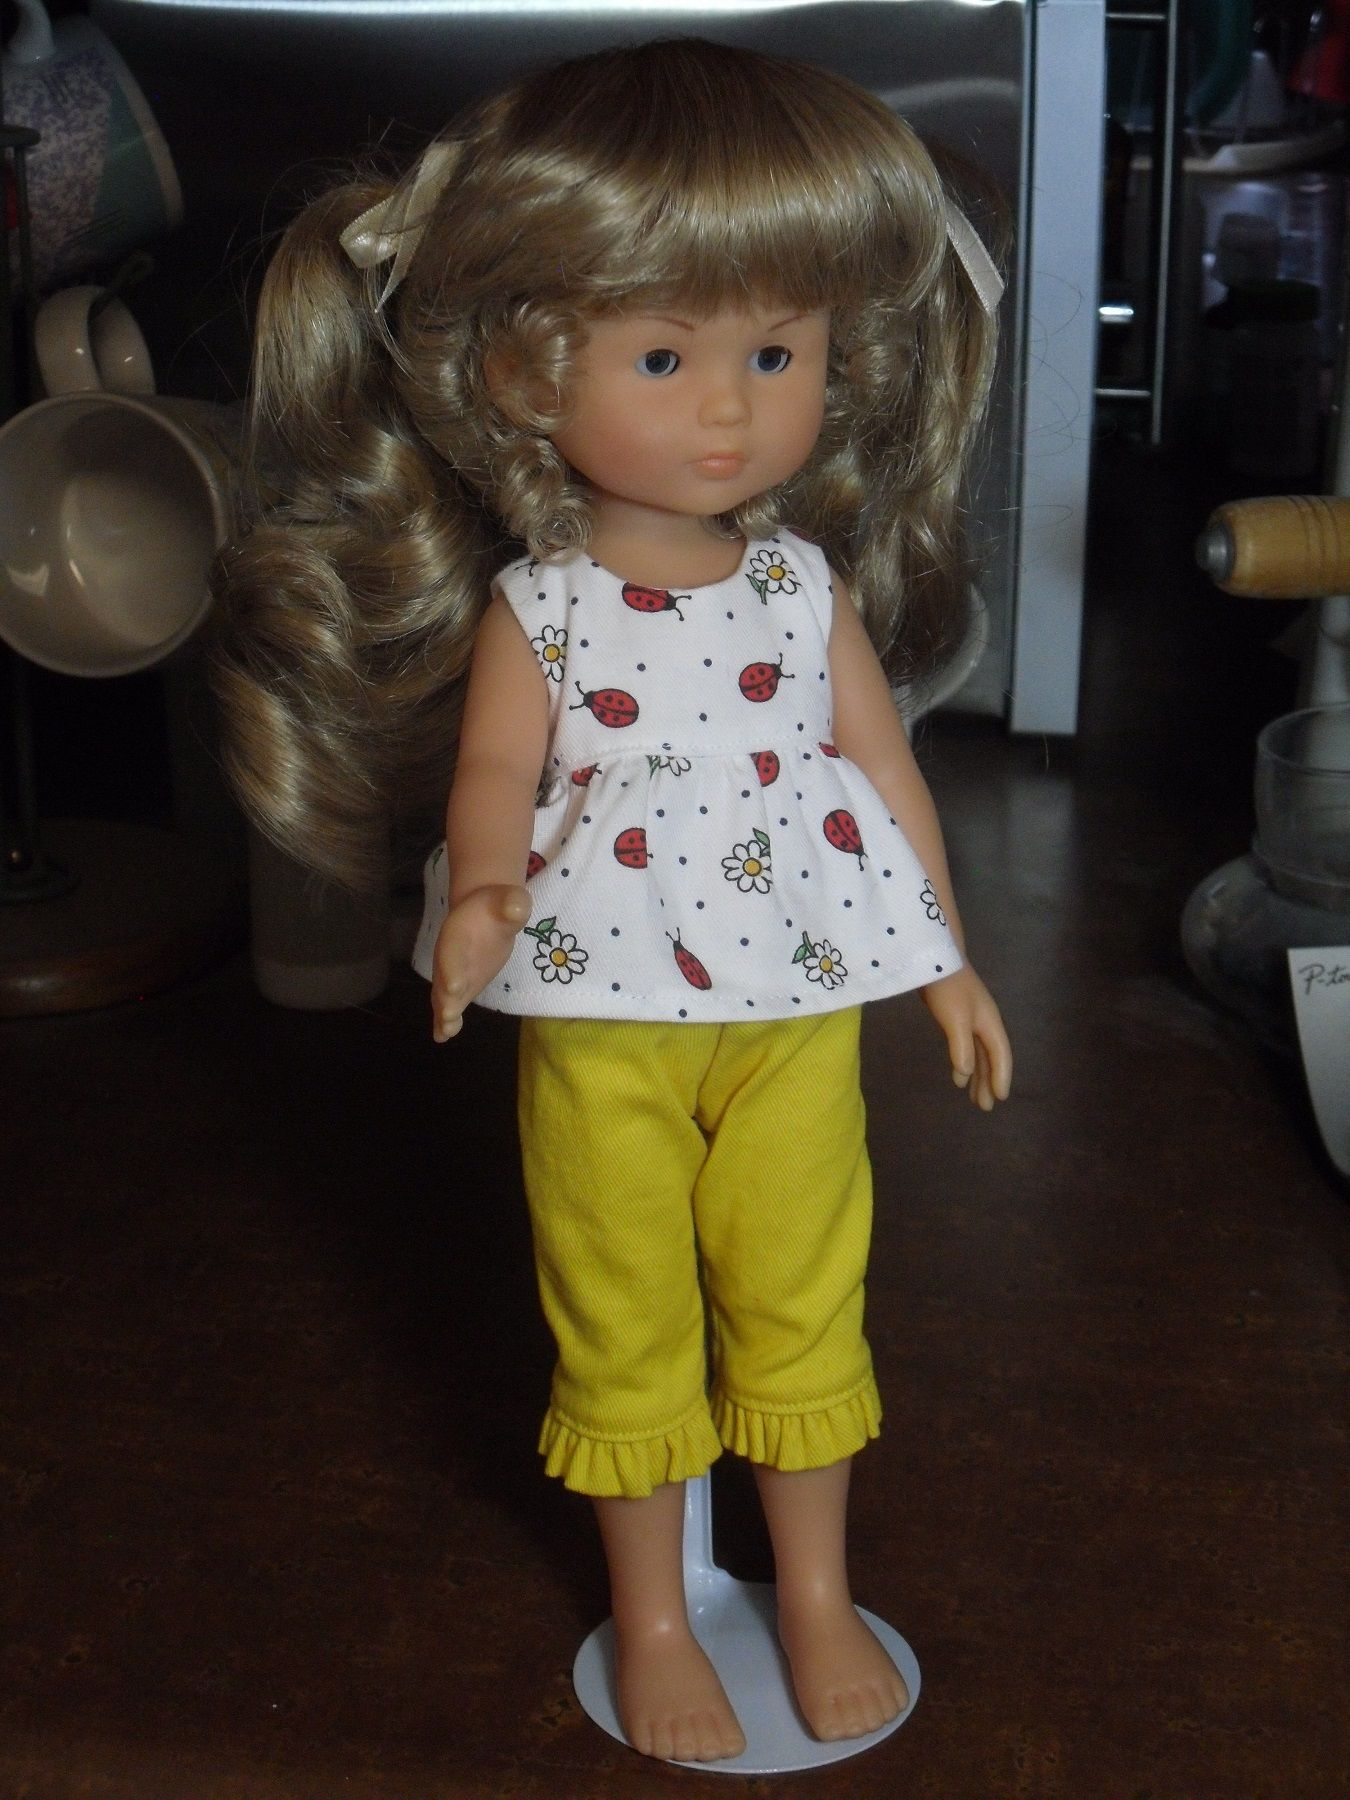 Les Cheries - Global Doll Wig - JANEY Size 9-10 BLONDE - Too big, but from the front it looks fine.  The back of the wig is way down on her neck.  Since I haven't found this in a smaller size, it will stay!  I think it's cute.